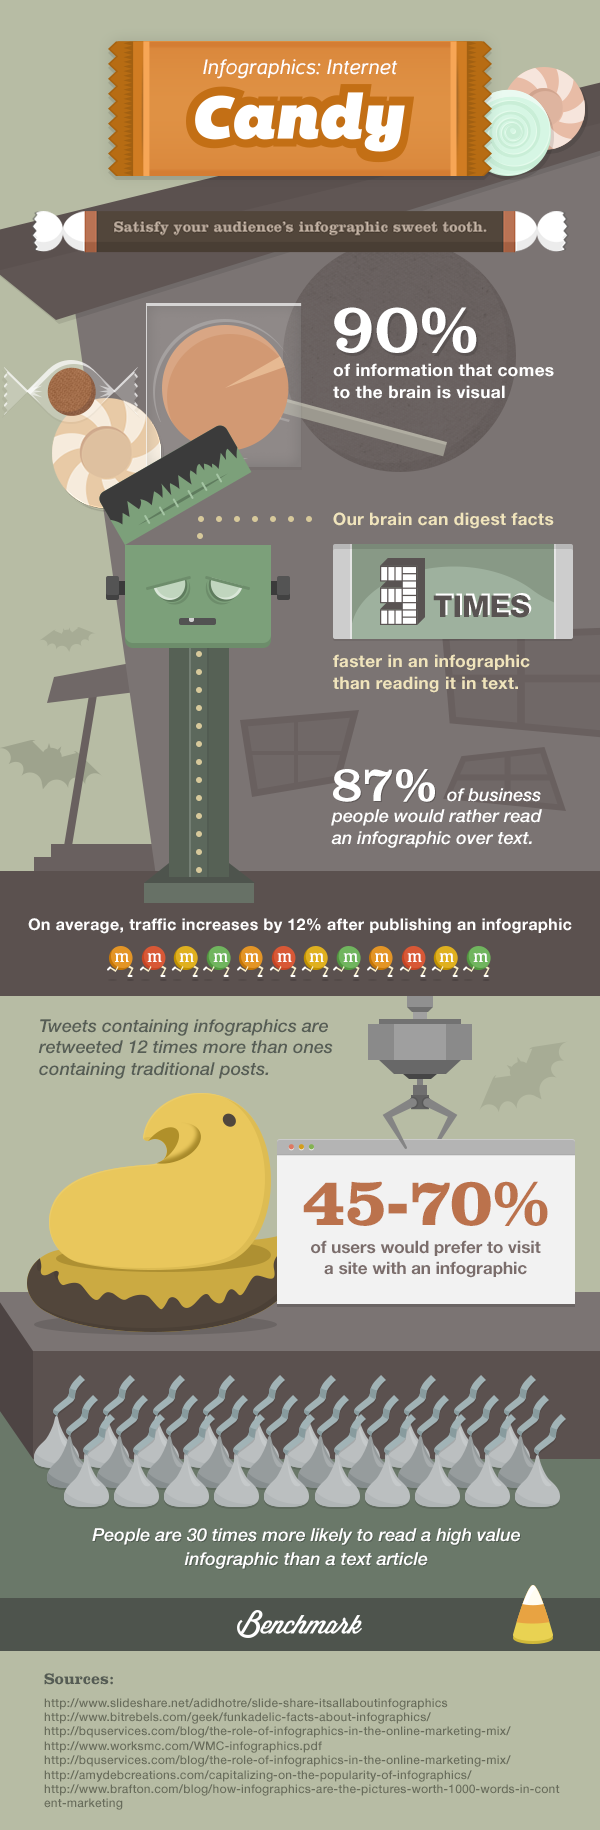 Infographics: Internet Candy. Satisfy your audience